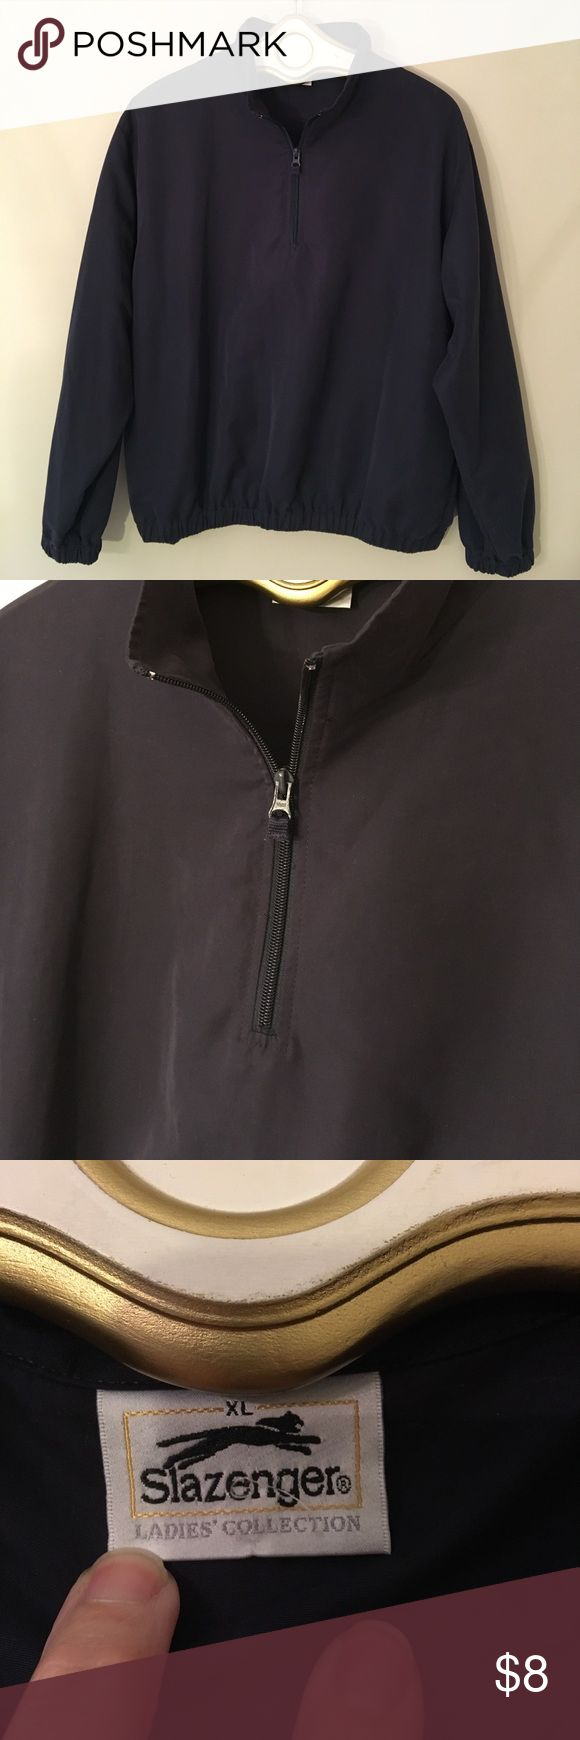 "Slazenger Women's Pull Over Golf Jacket XL Black Good condition. Little bit of fading. I think part of the zipper pull is missing?  Pockets. Elastic on sleeves and waist. Pull over jacket. 100 % Polyester. Not lined. Sleeve length 24"". Waist 38"" unstretched. Underarm to underarm measures 27"" inches. Slazenger Jackets & Coats"